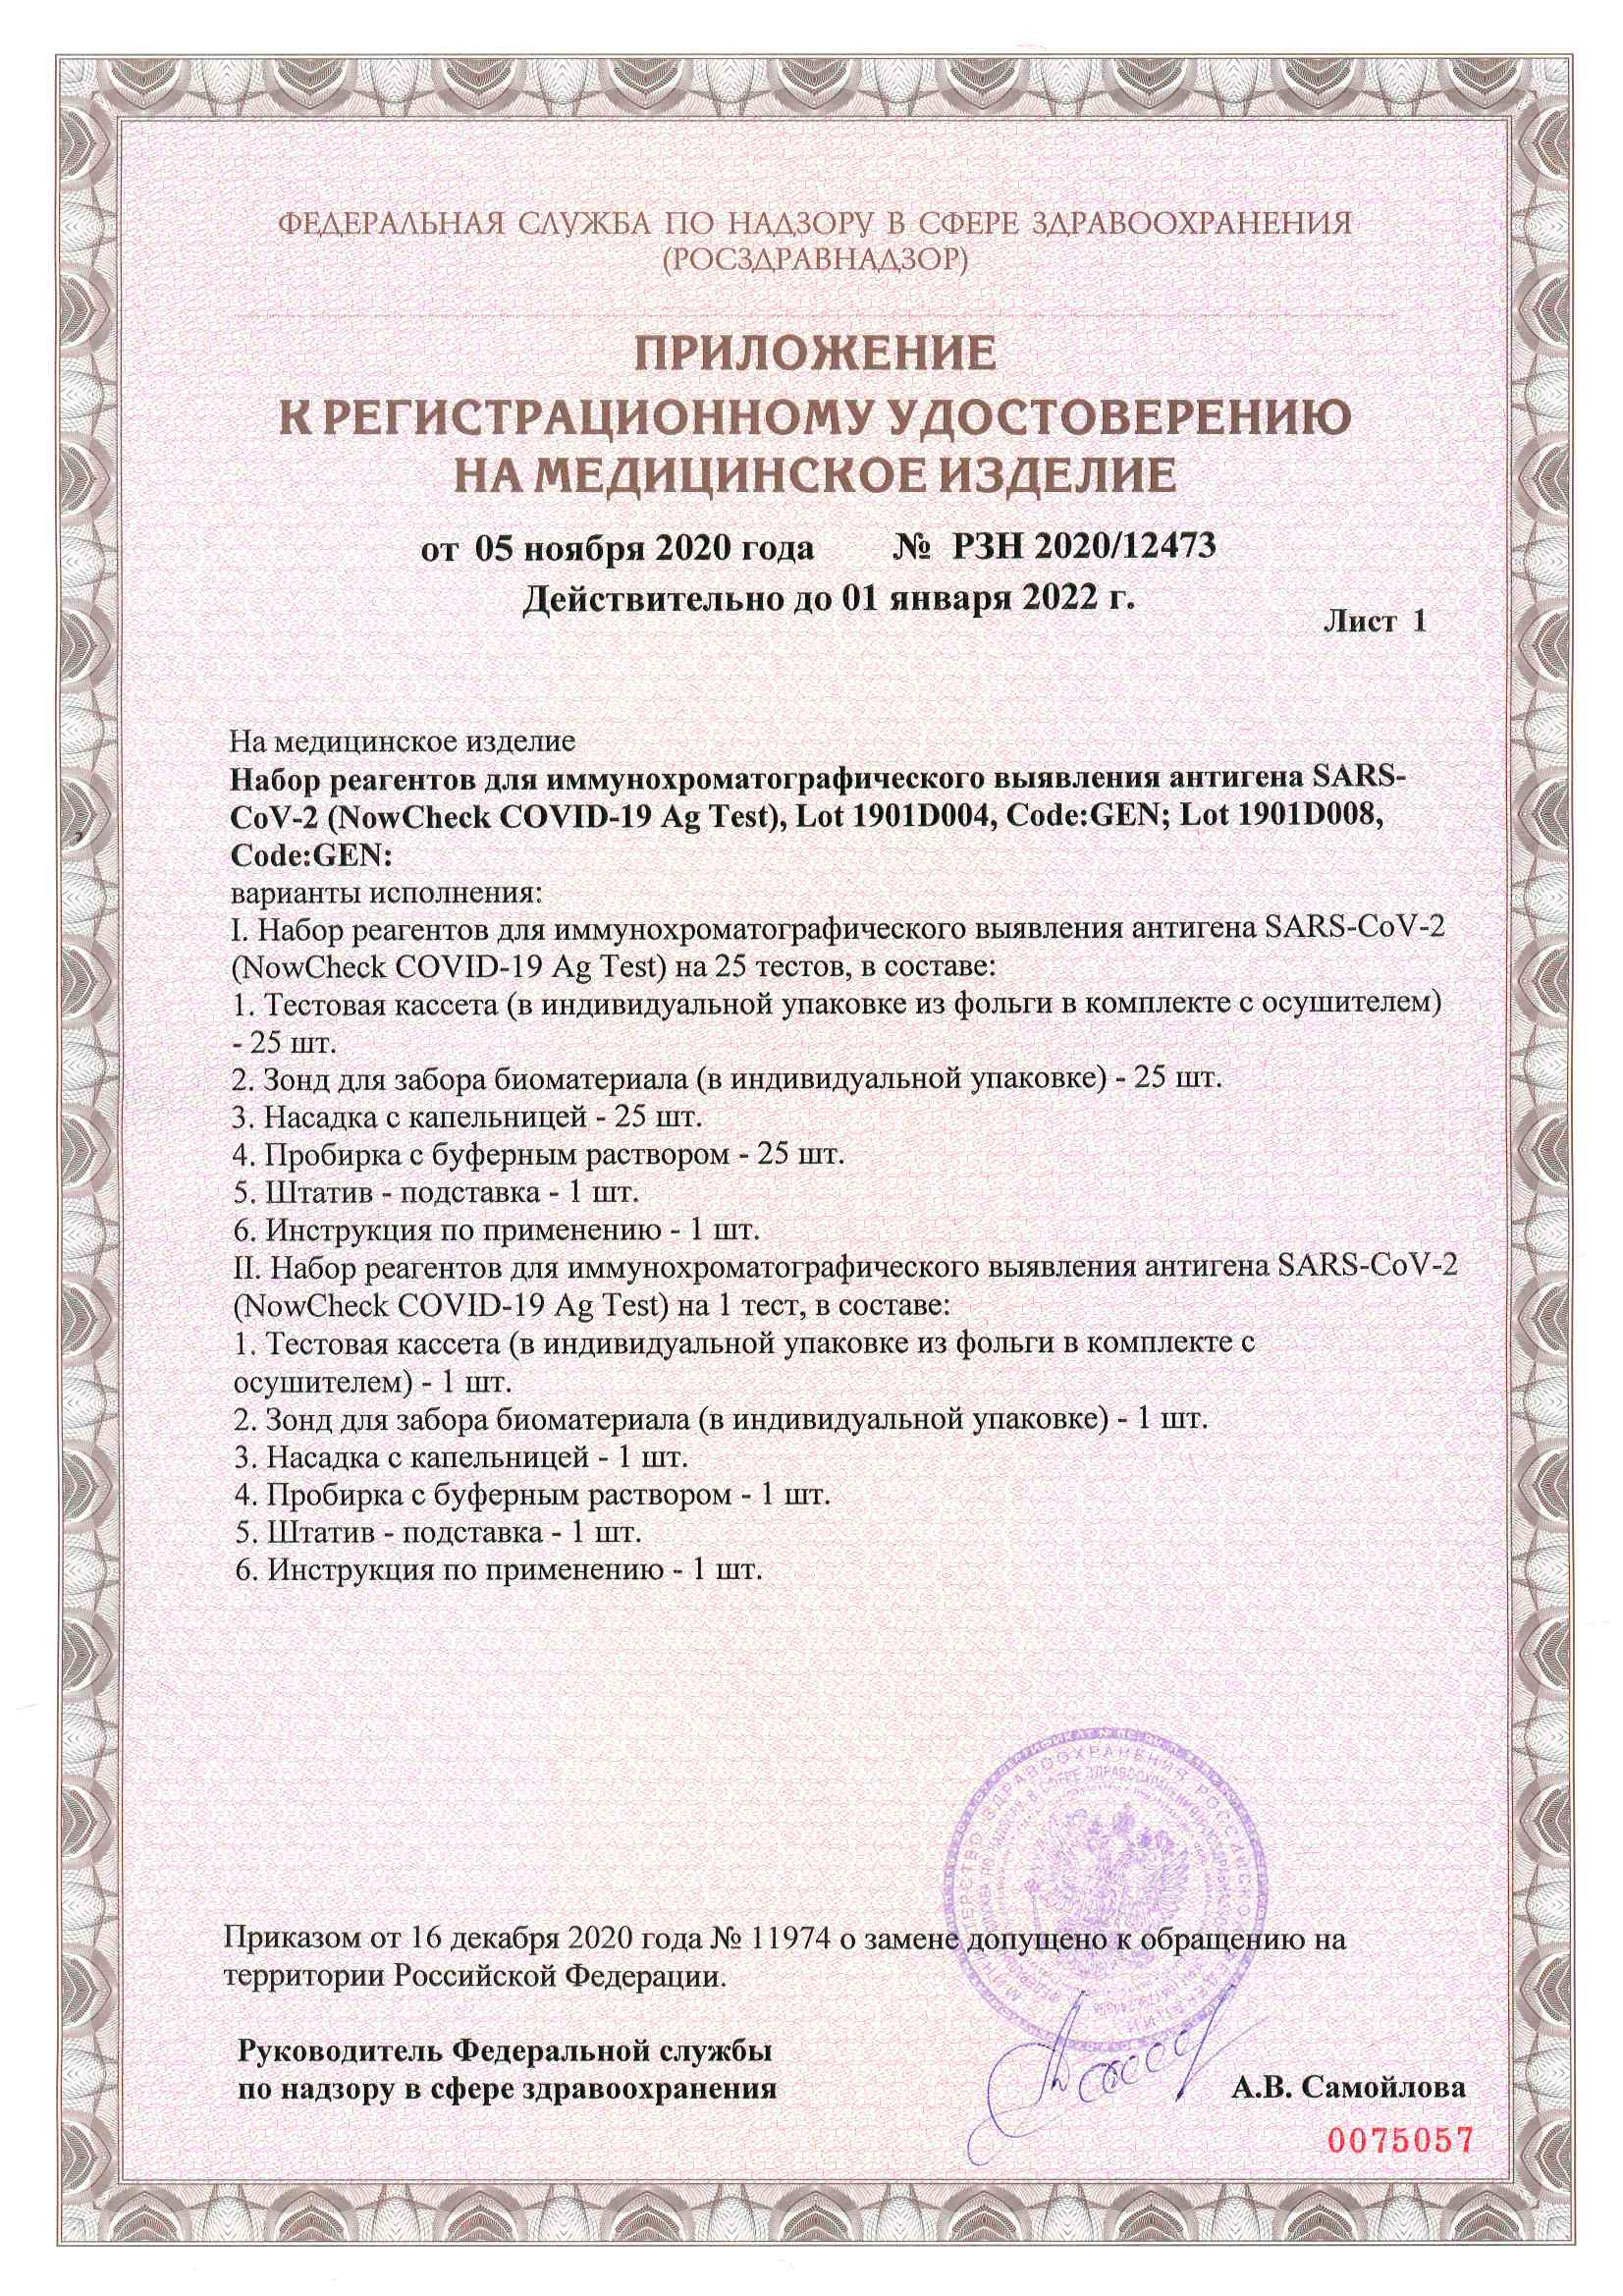 Bionote, Nowcheck COVID-19 Ag Test, 1 шт.